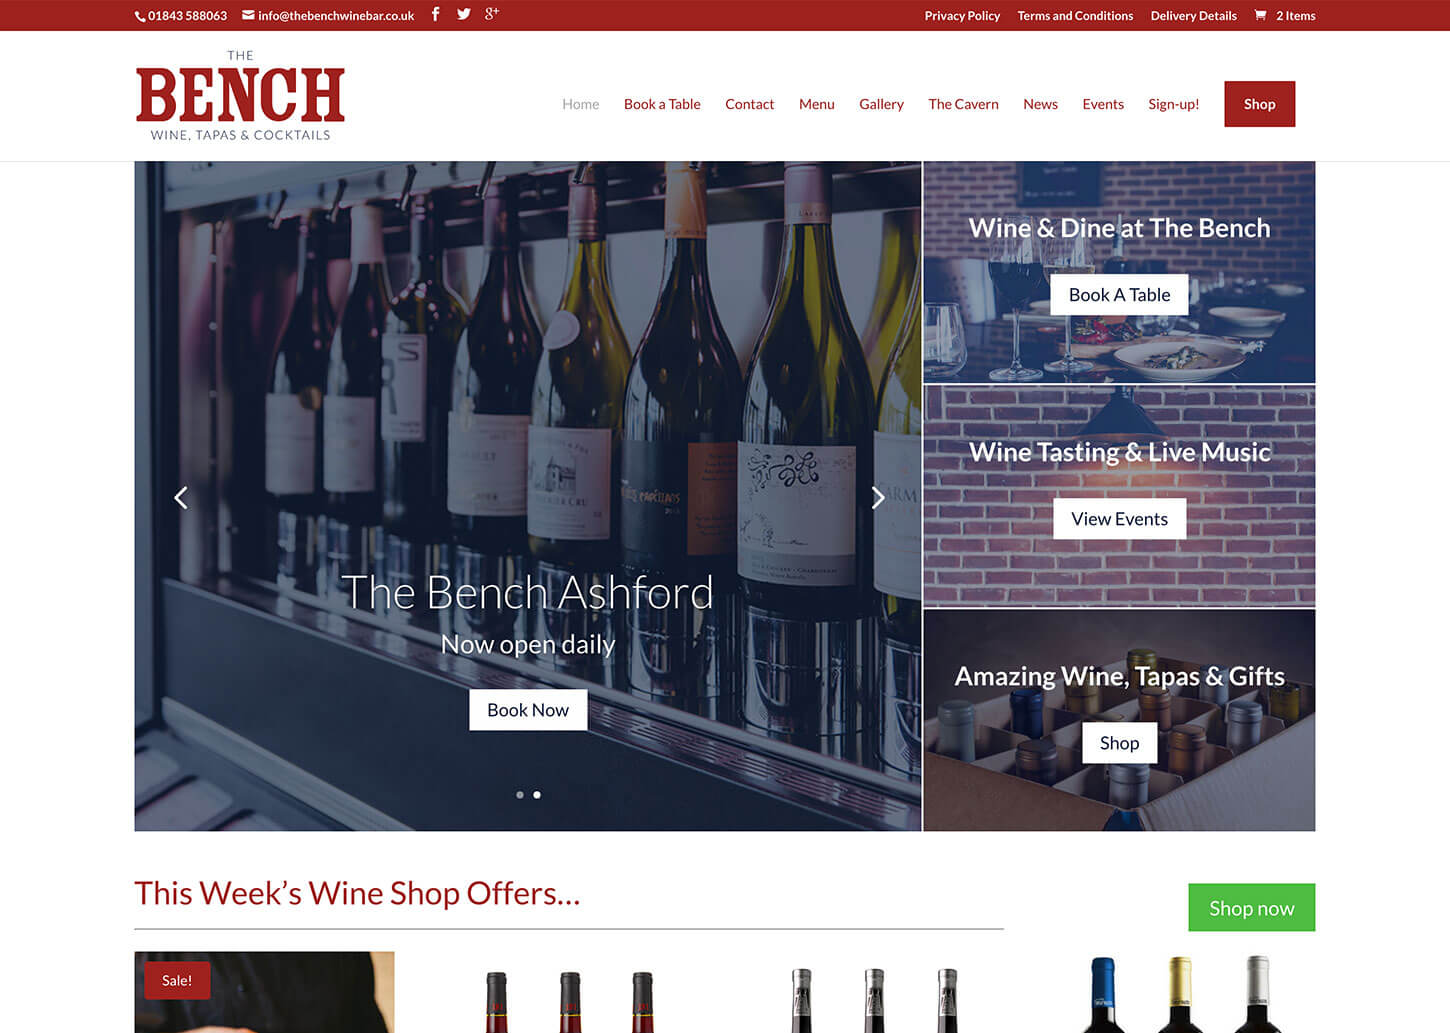 The Bench Restaurant website design - Home page